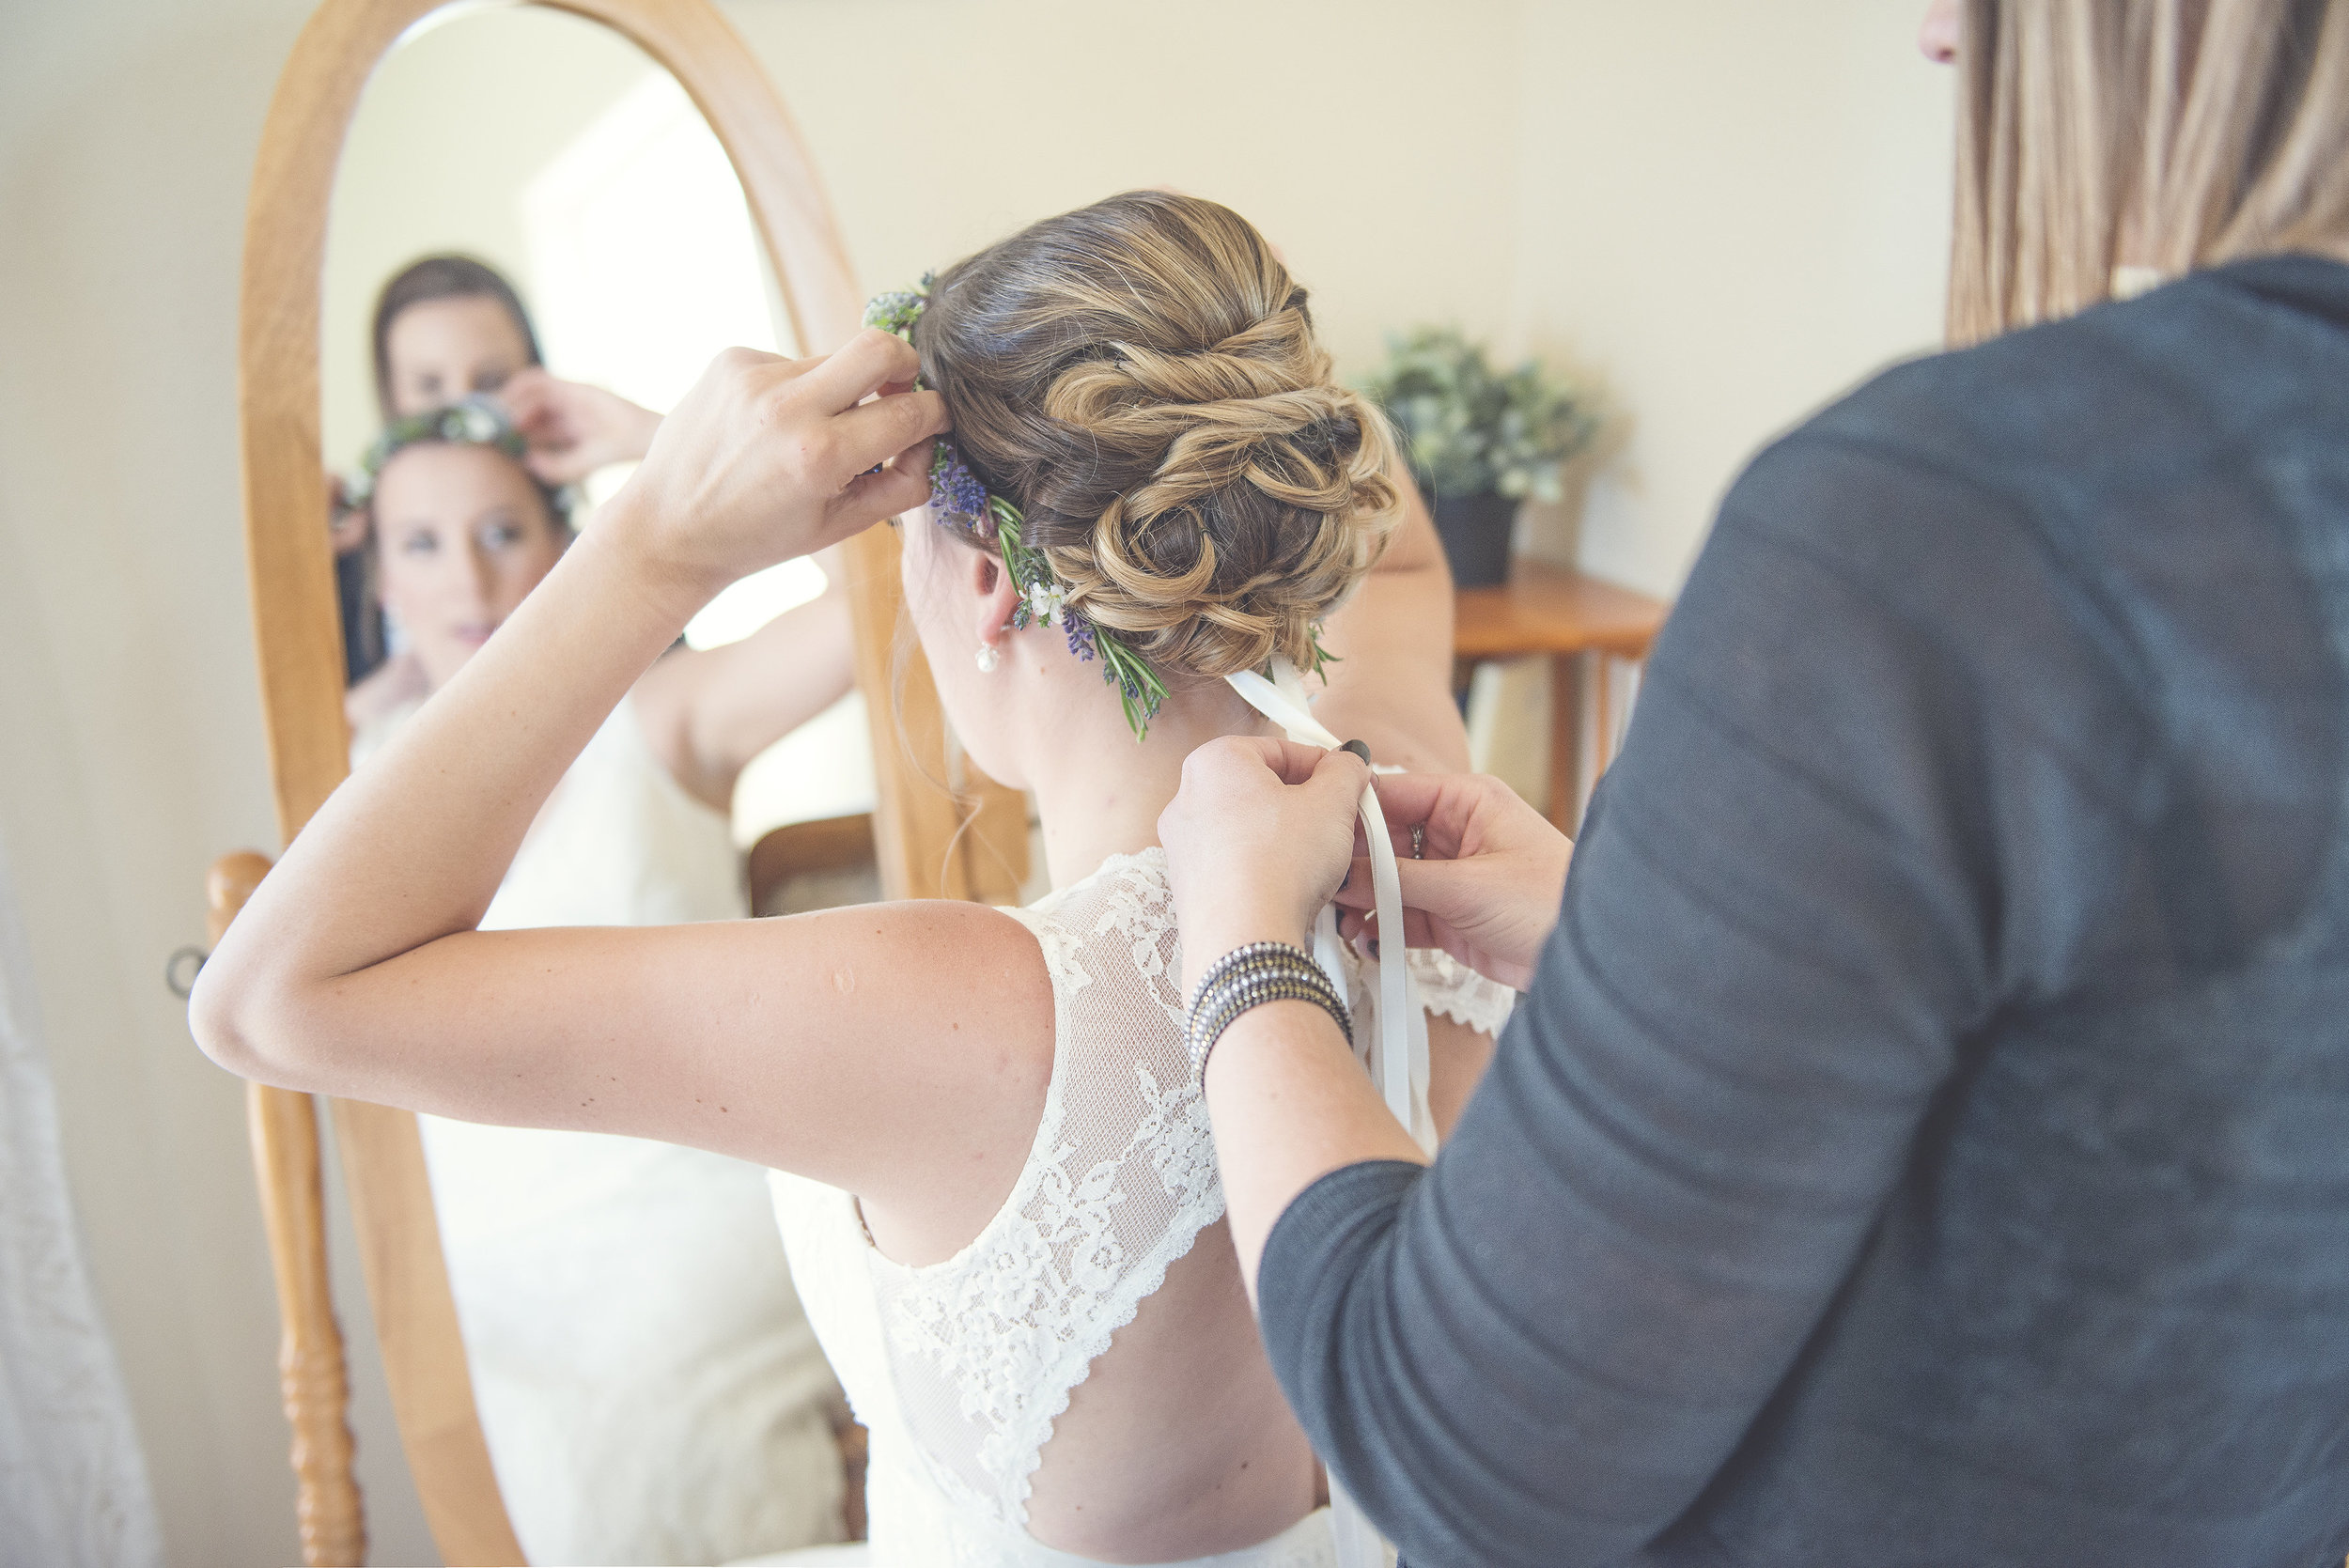 The Loft apartment is a perfect spot to do your hair and makeup before walking down the aisle. Photo Credit:  Eden Bryant PhotograpHy